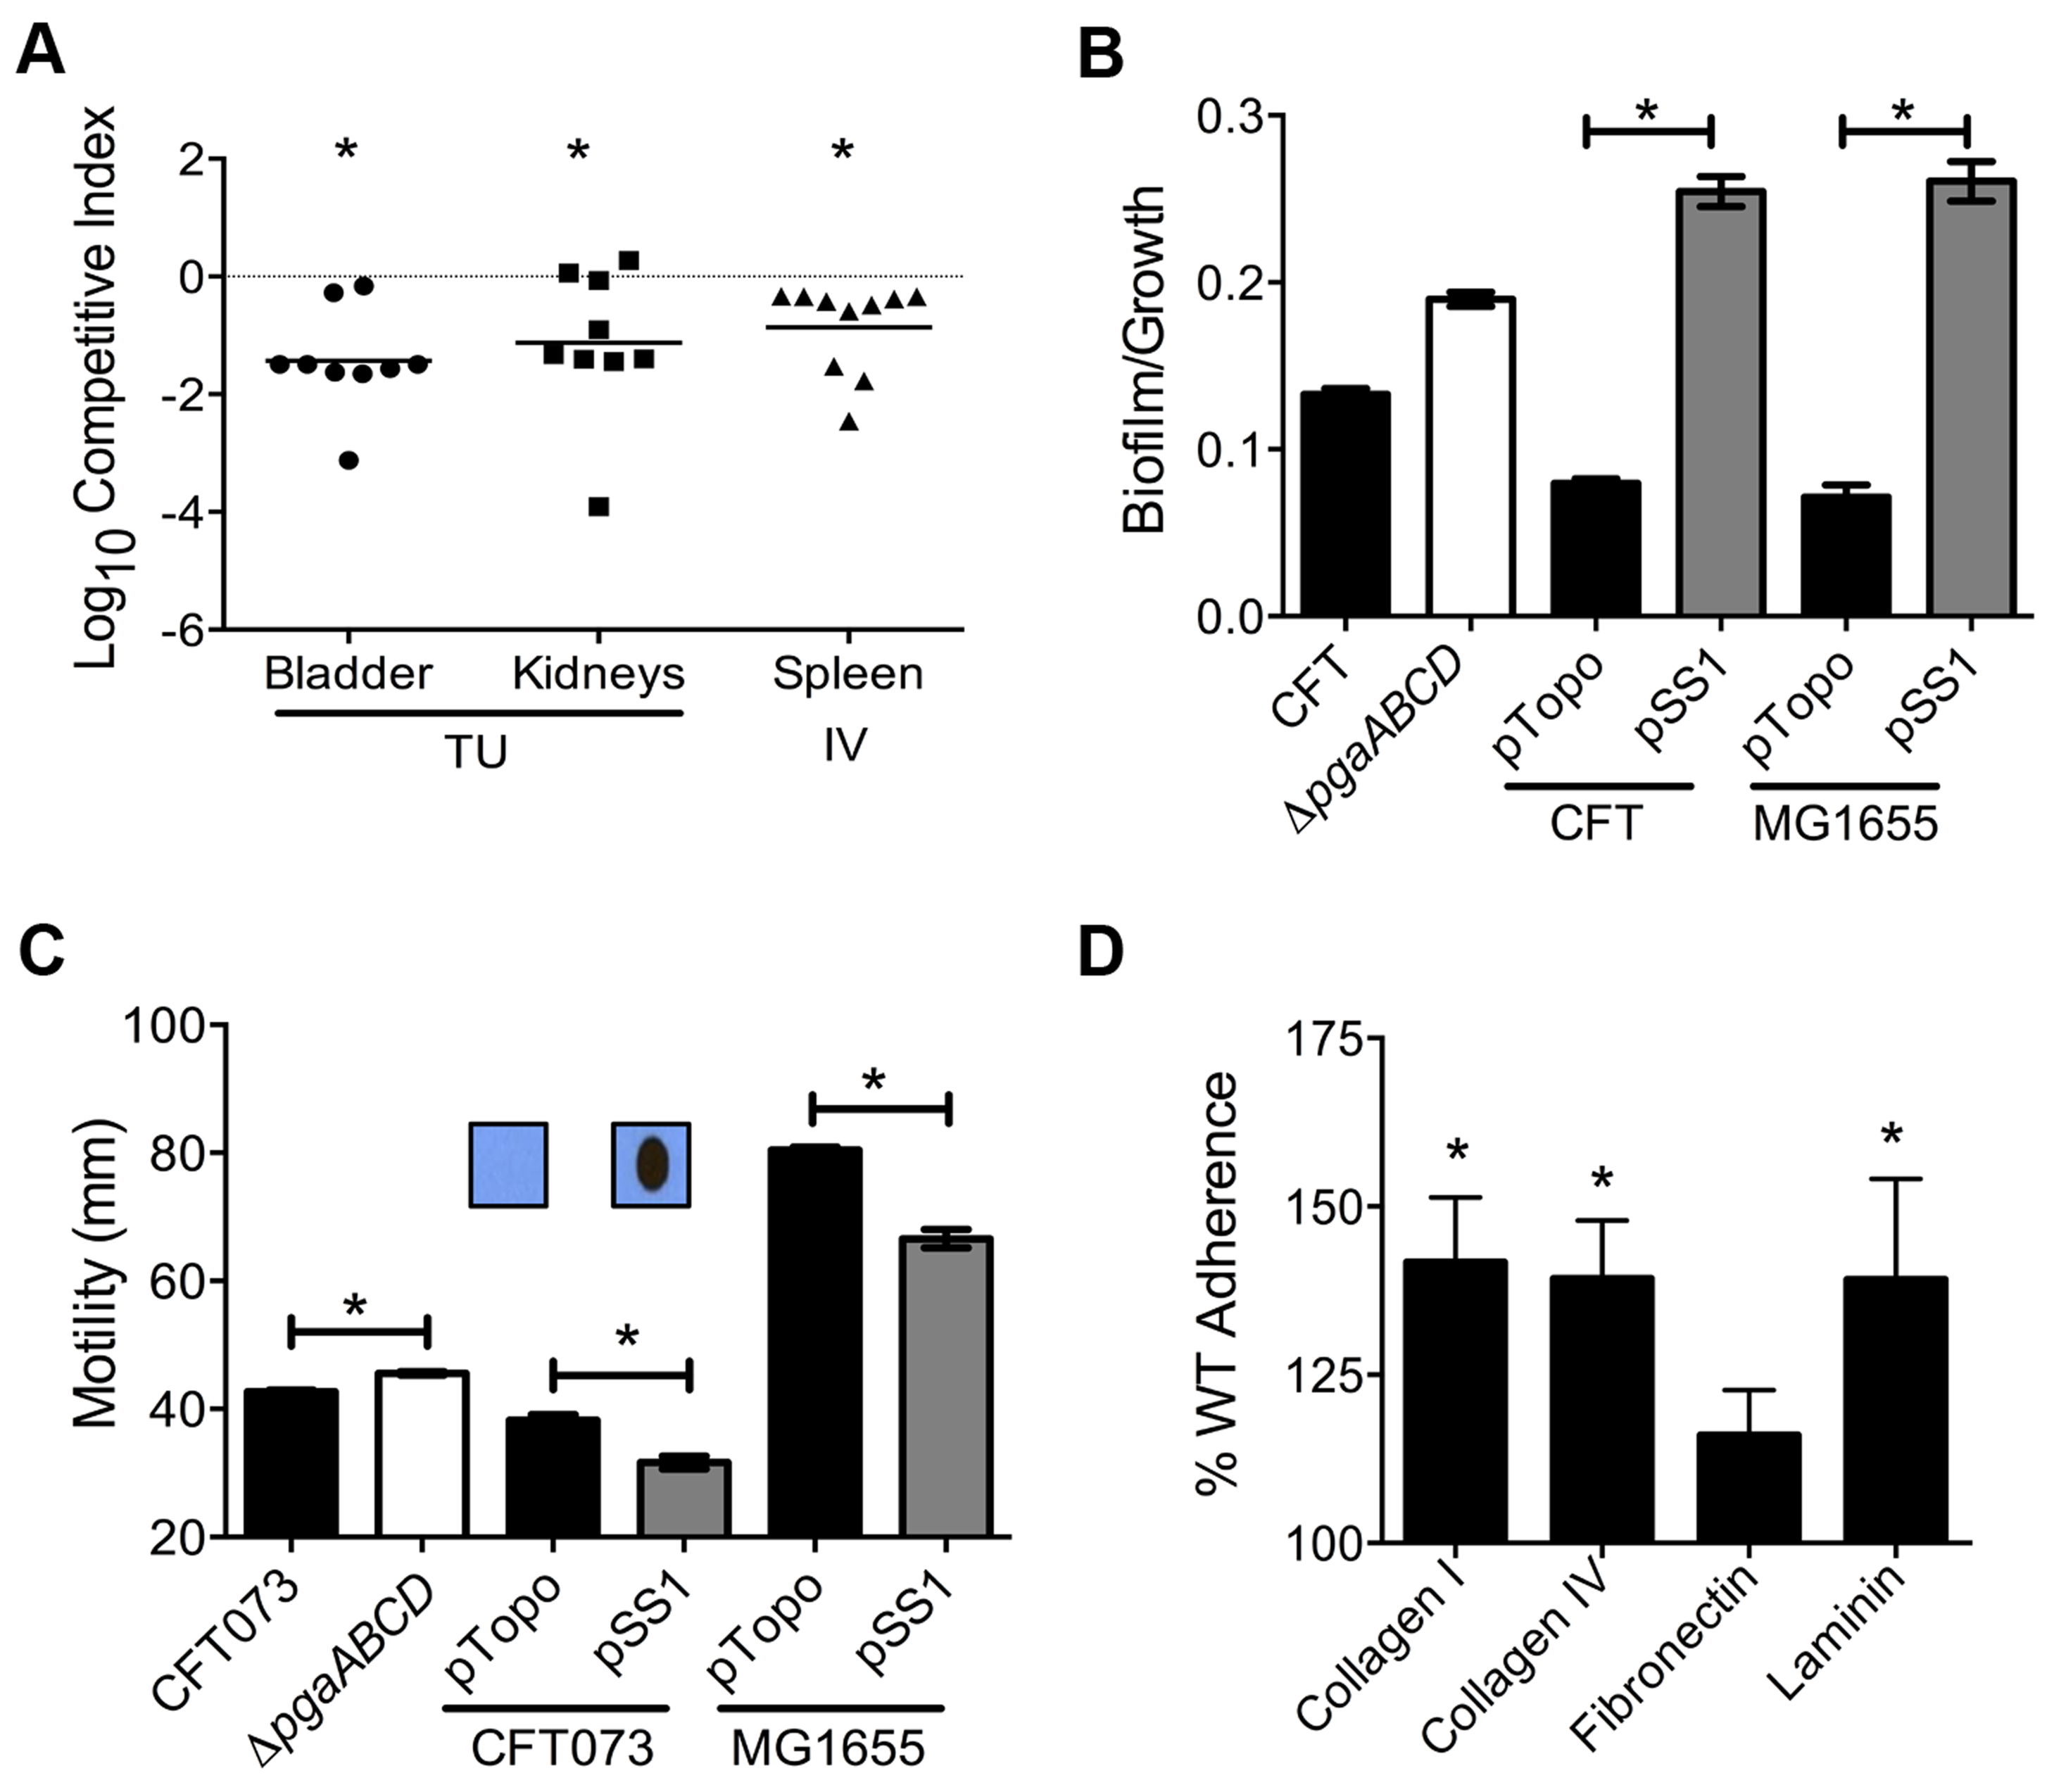 Poly-N-acetyl glucosamine is a fitness factor that promotes UPEC biofilm formation.